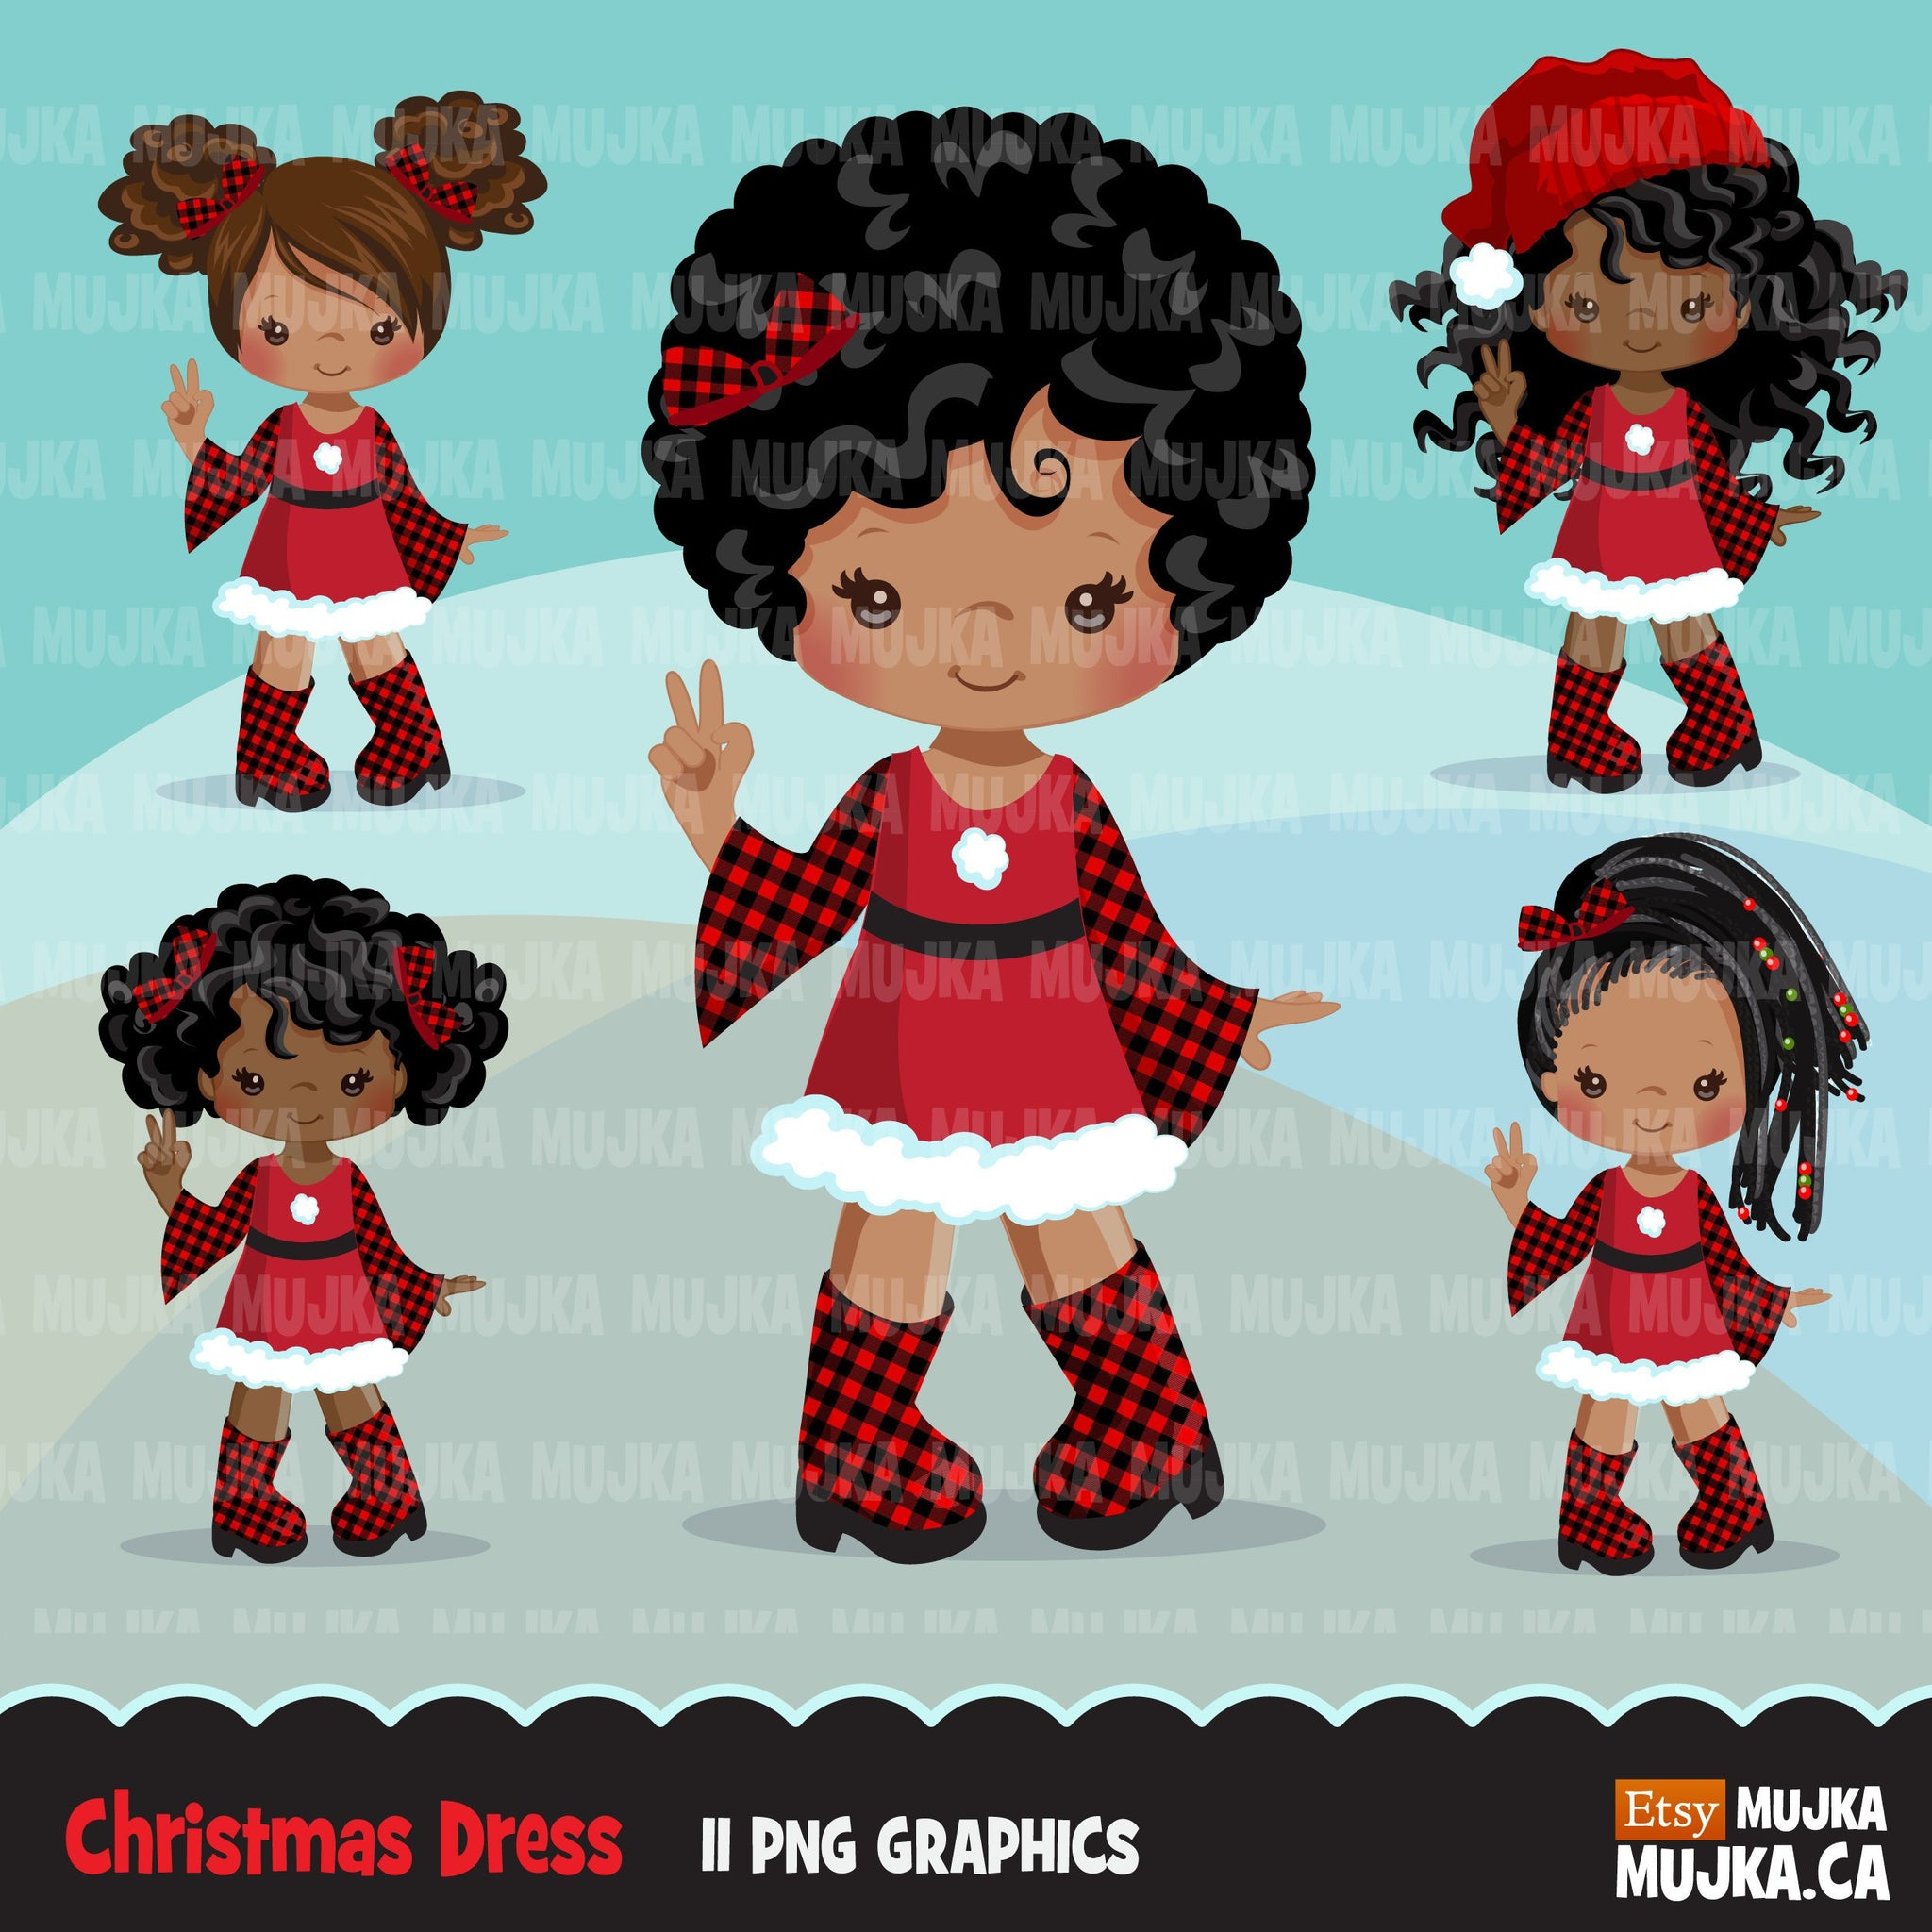 Christmas clipart, Santa little black girls with plaid dress, commercial use graphics, afro plaid